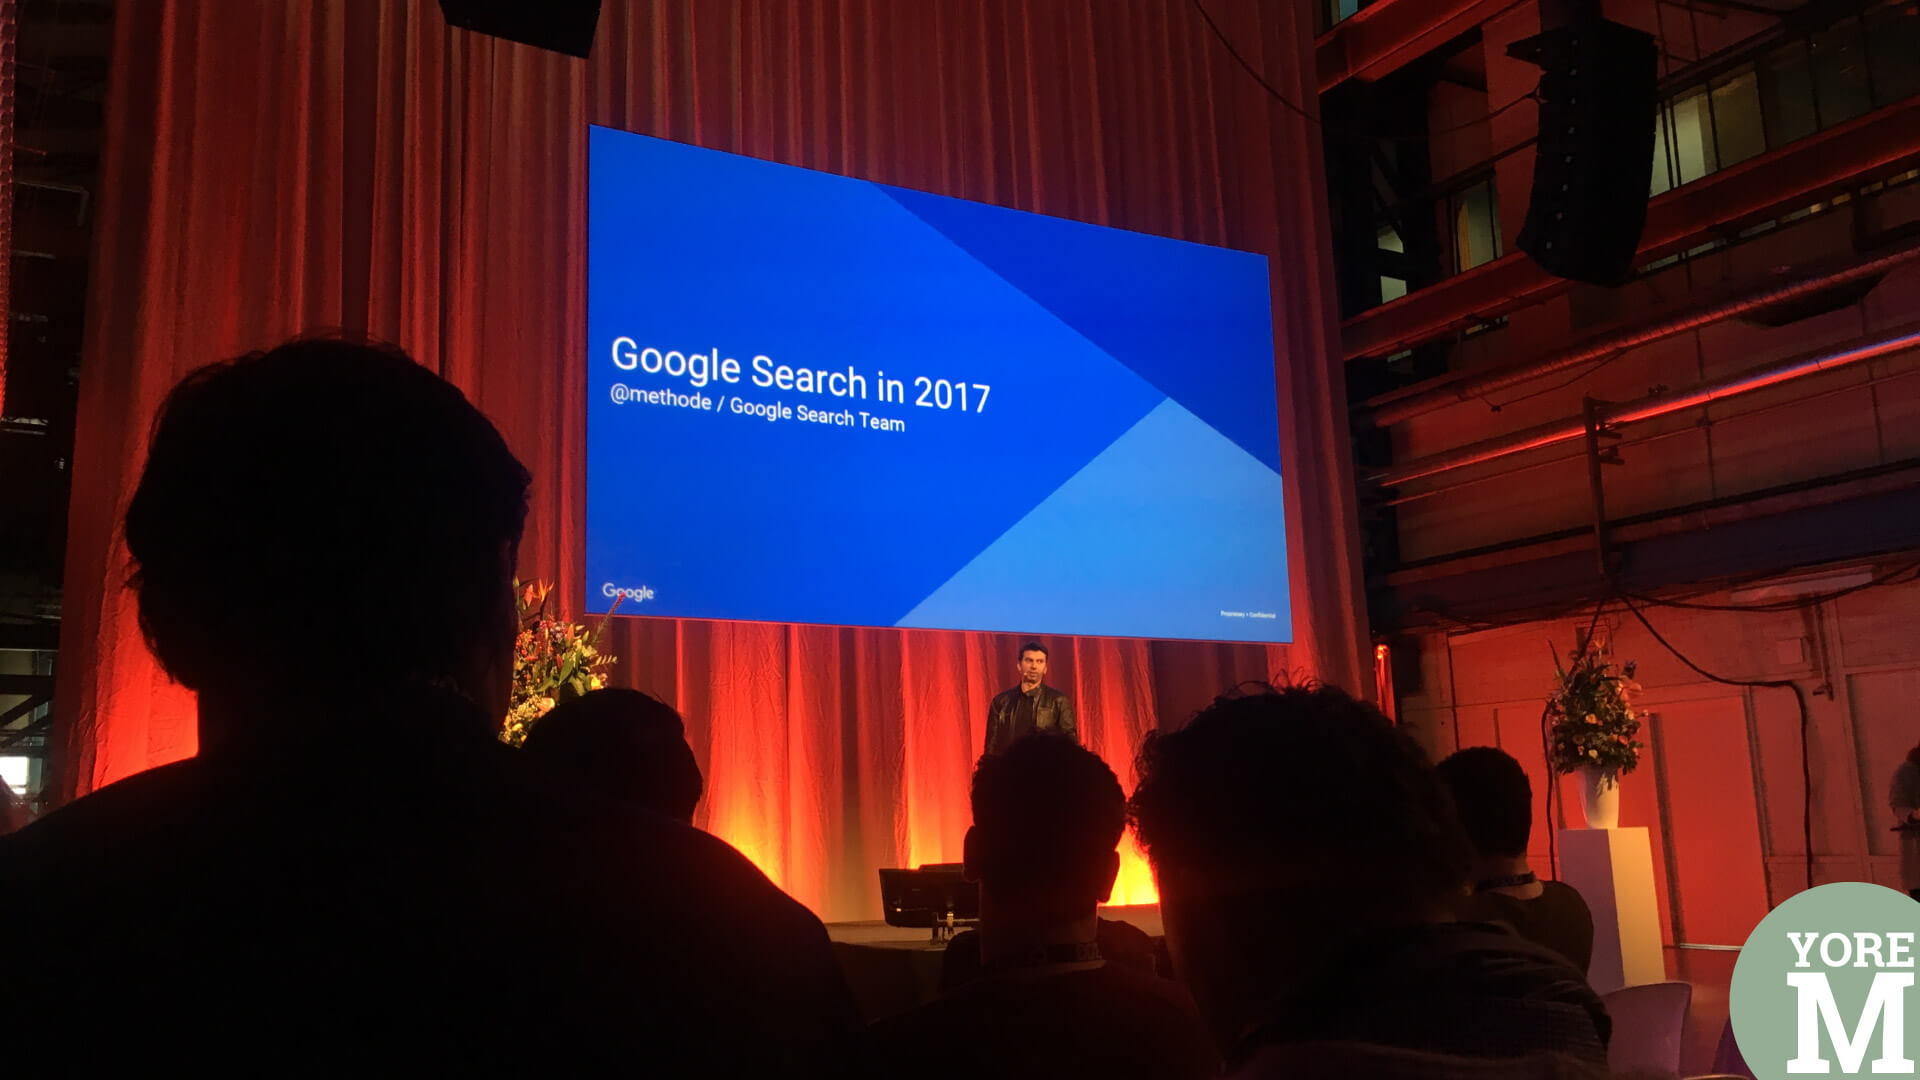 yoreM-Friends-of-Search-2017-Gary-Illyes-Google